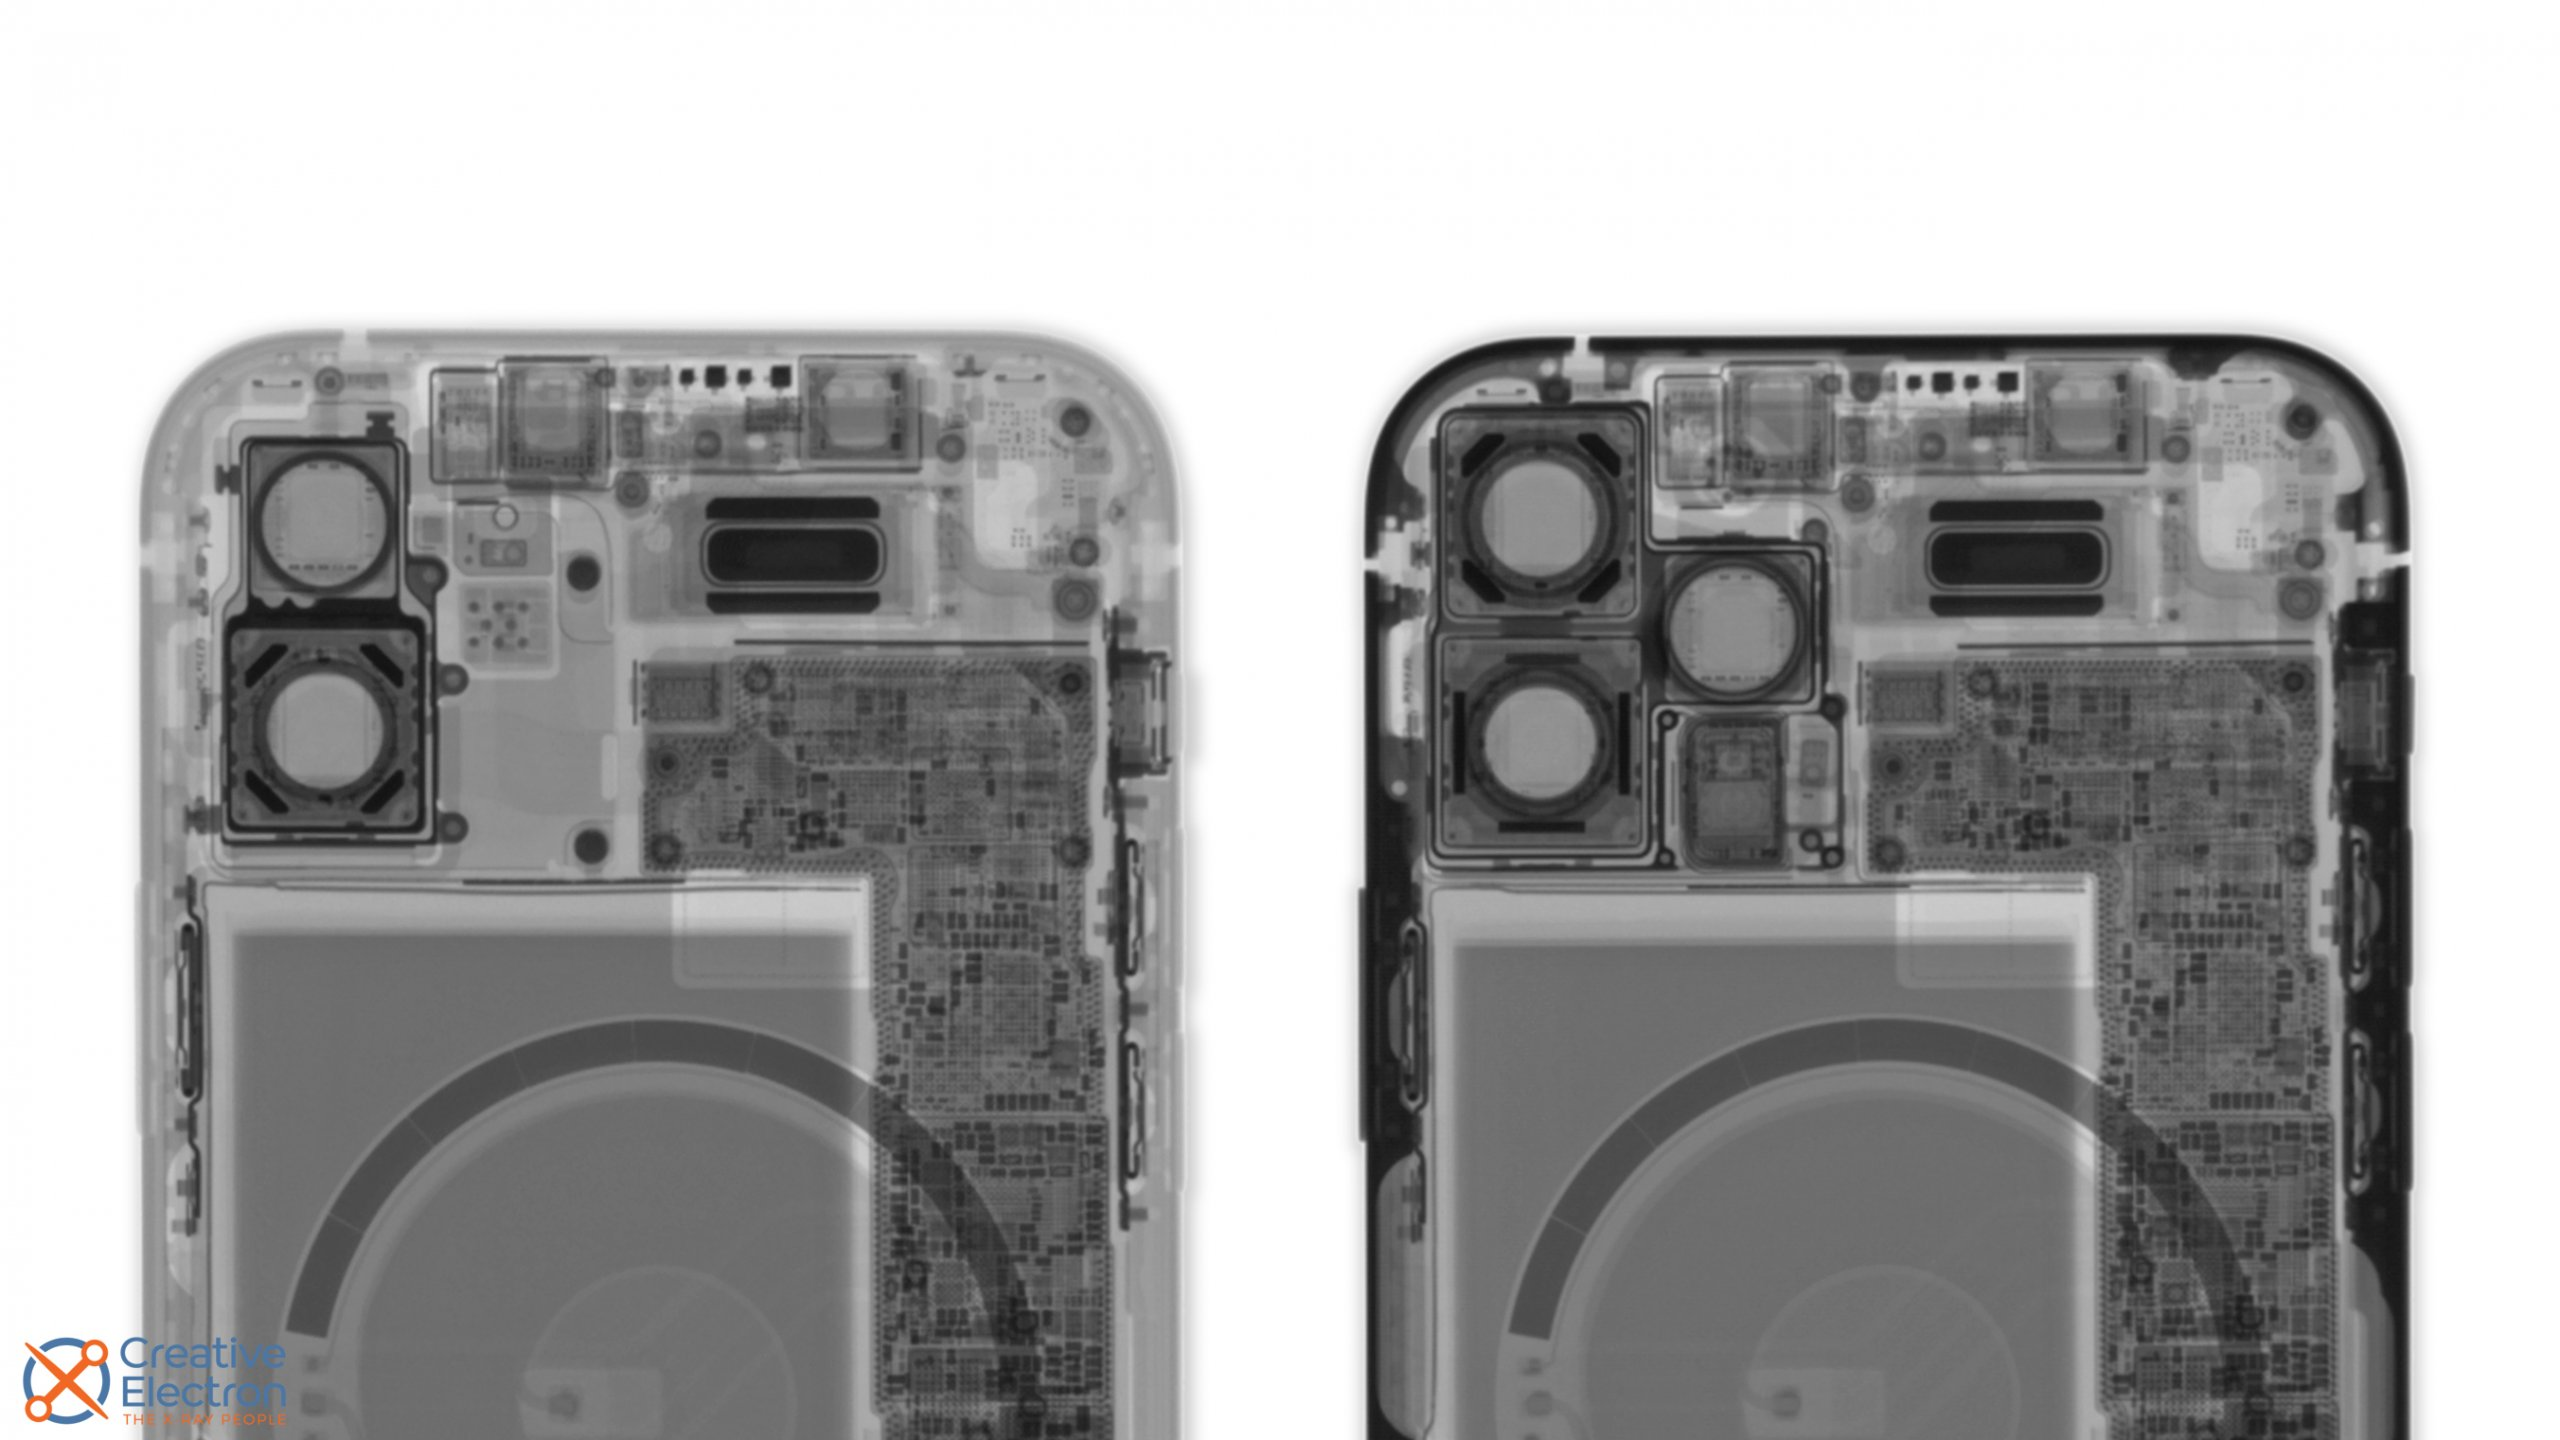 X-rays of iPhone 12 and iPhone 12 Pro models, showing off the little magnets around the camera on the Pro.